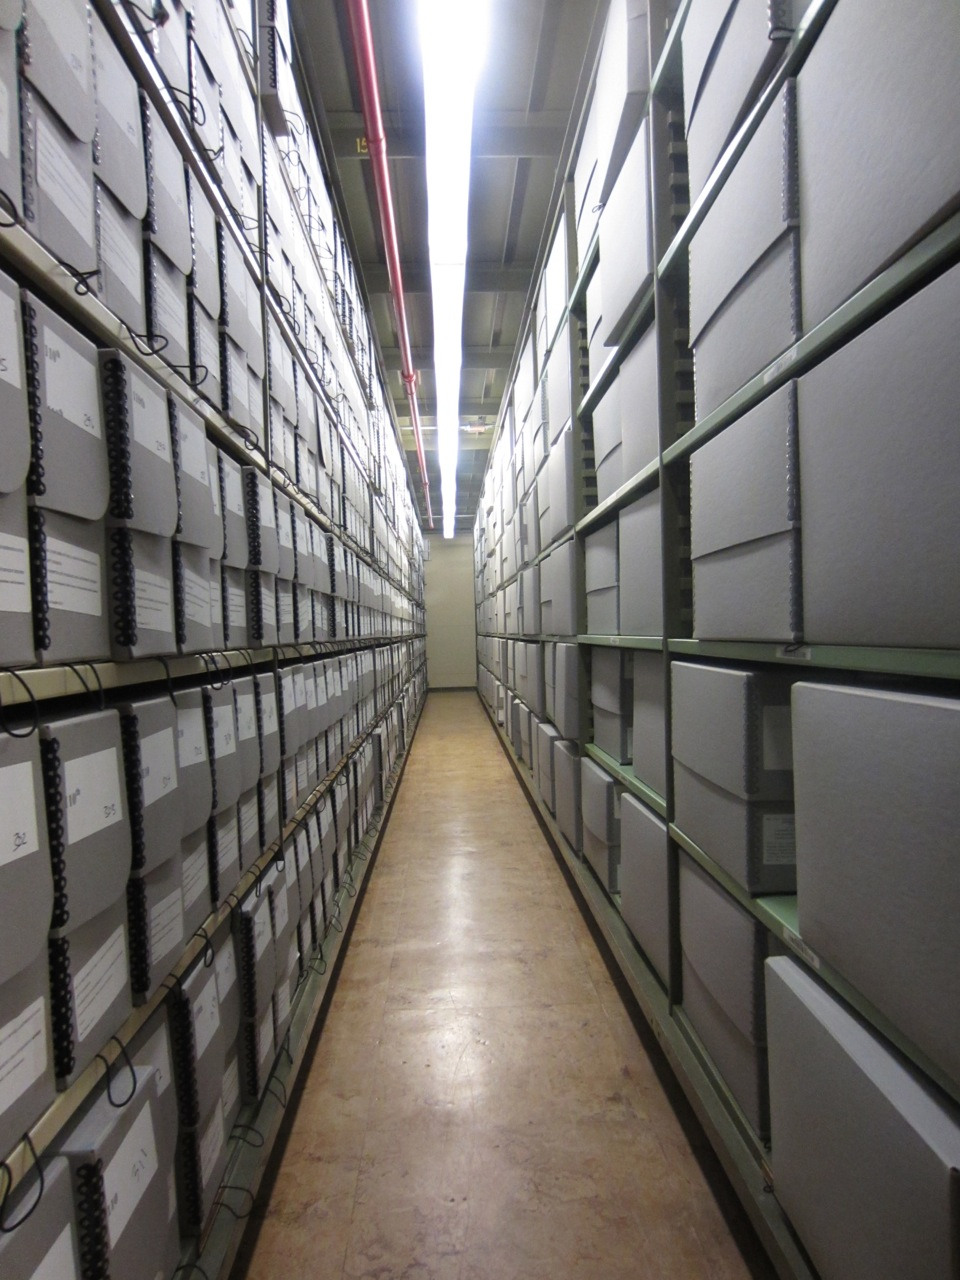 Image of files in a warehouse